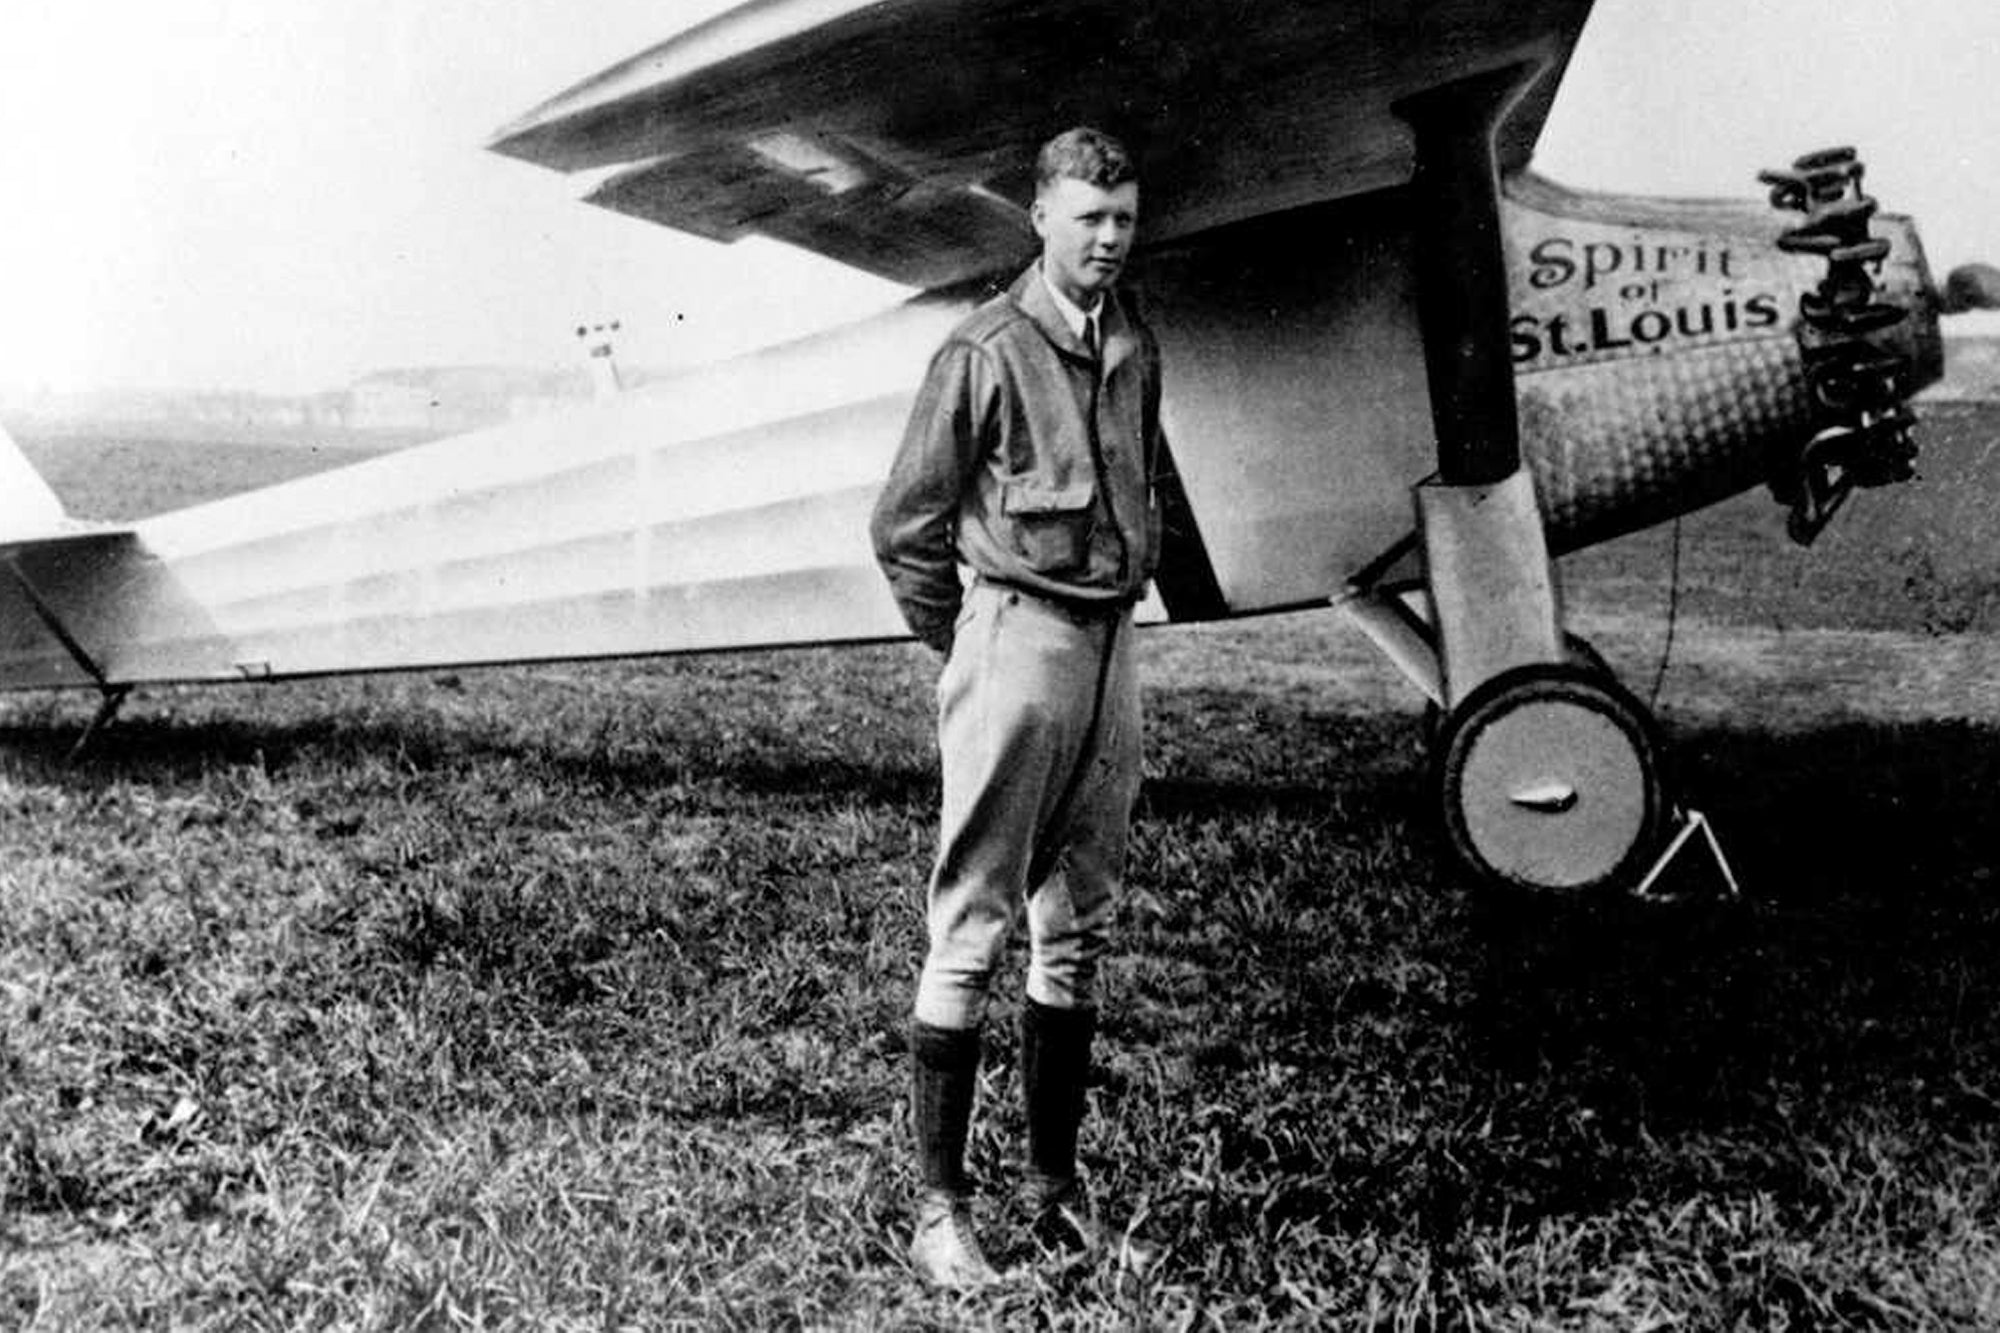 Charles Lindbergh next to the legendary Spirit of St Louis